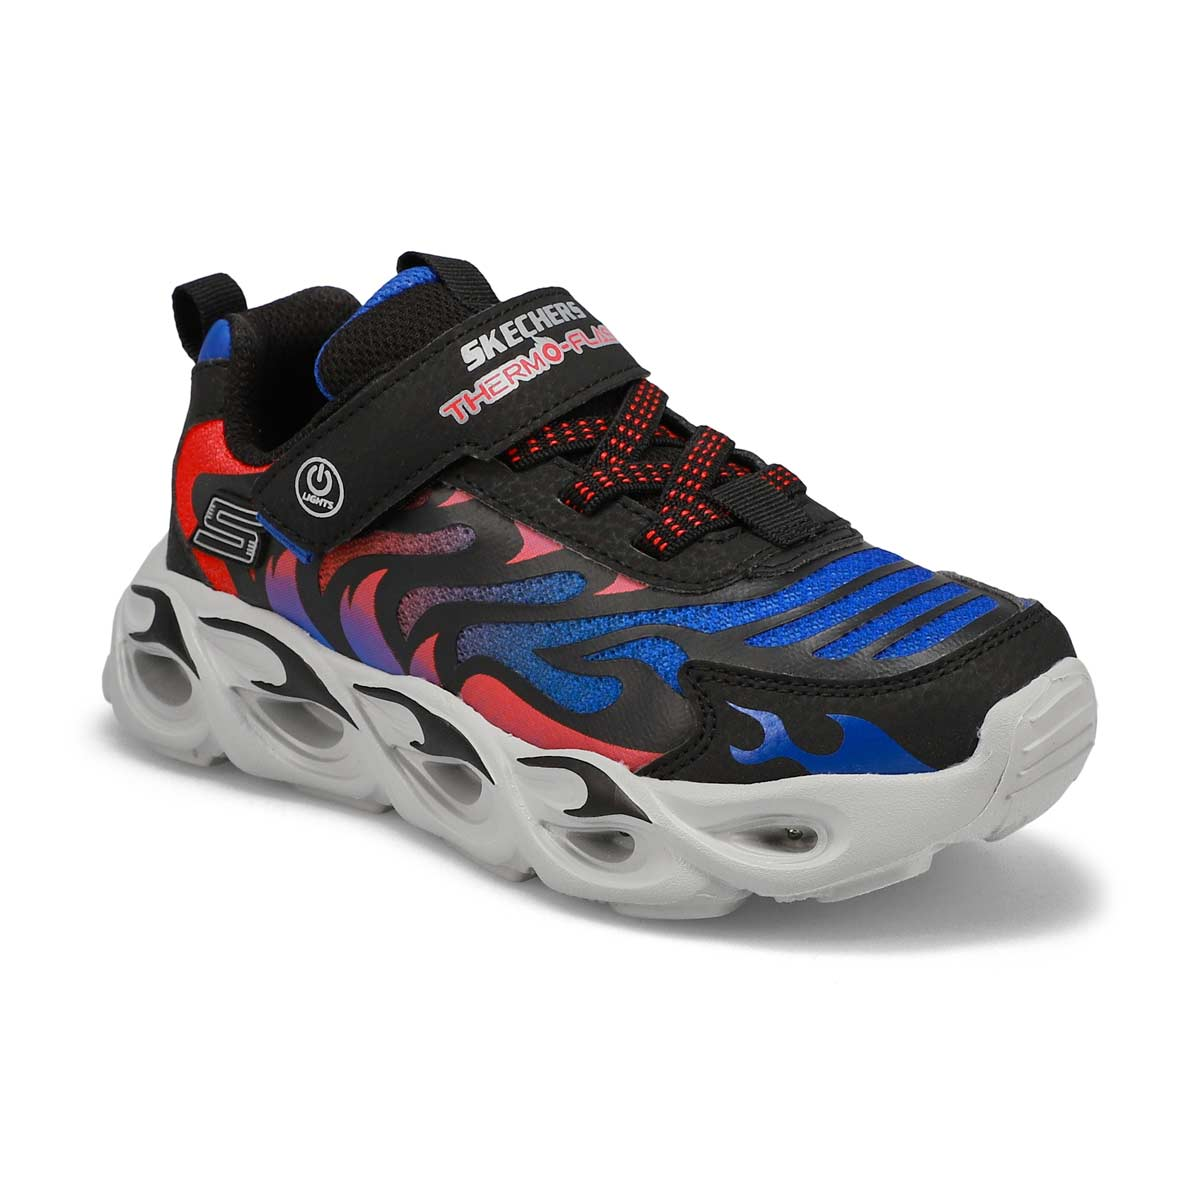 Boys' Thermo-Flash Light Up Sneakers - Black/Blue